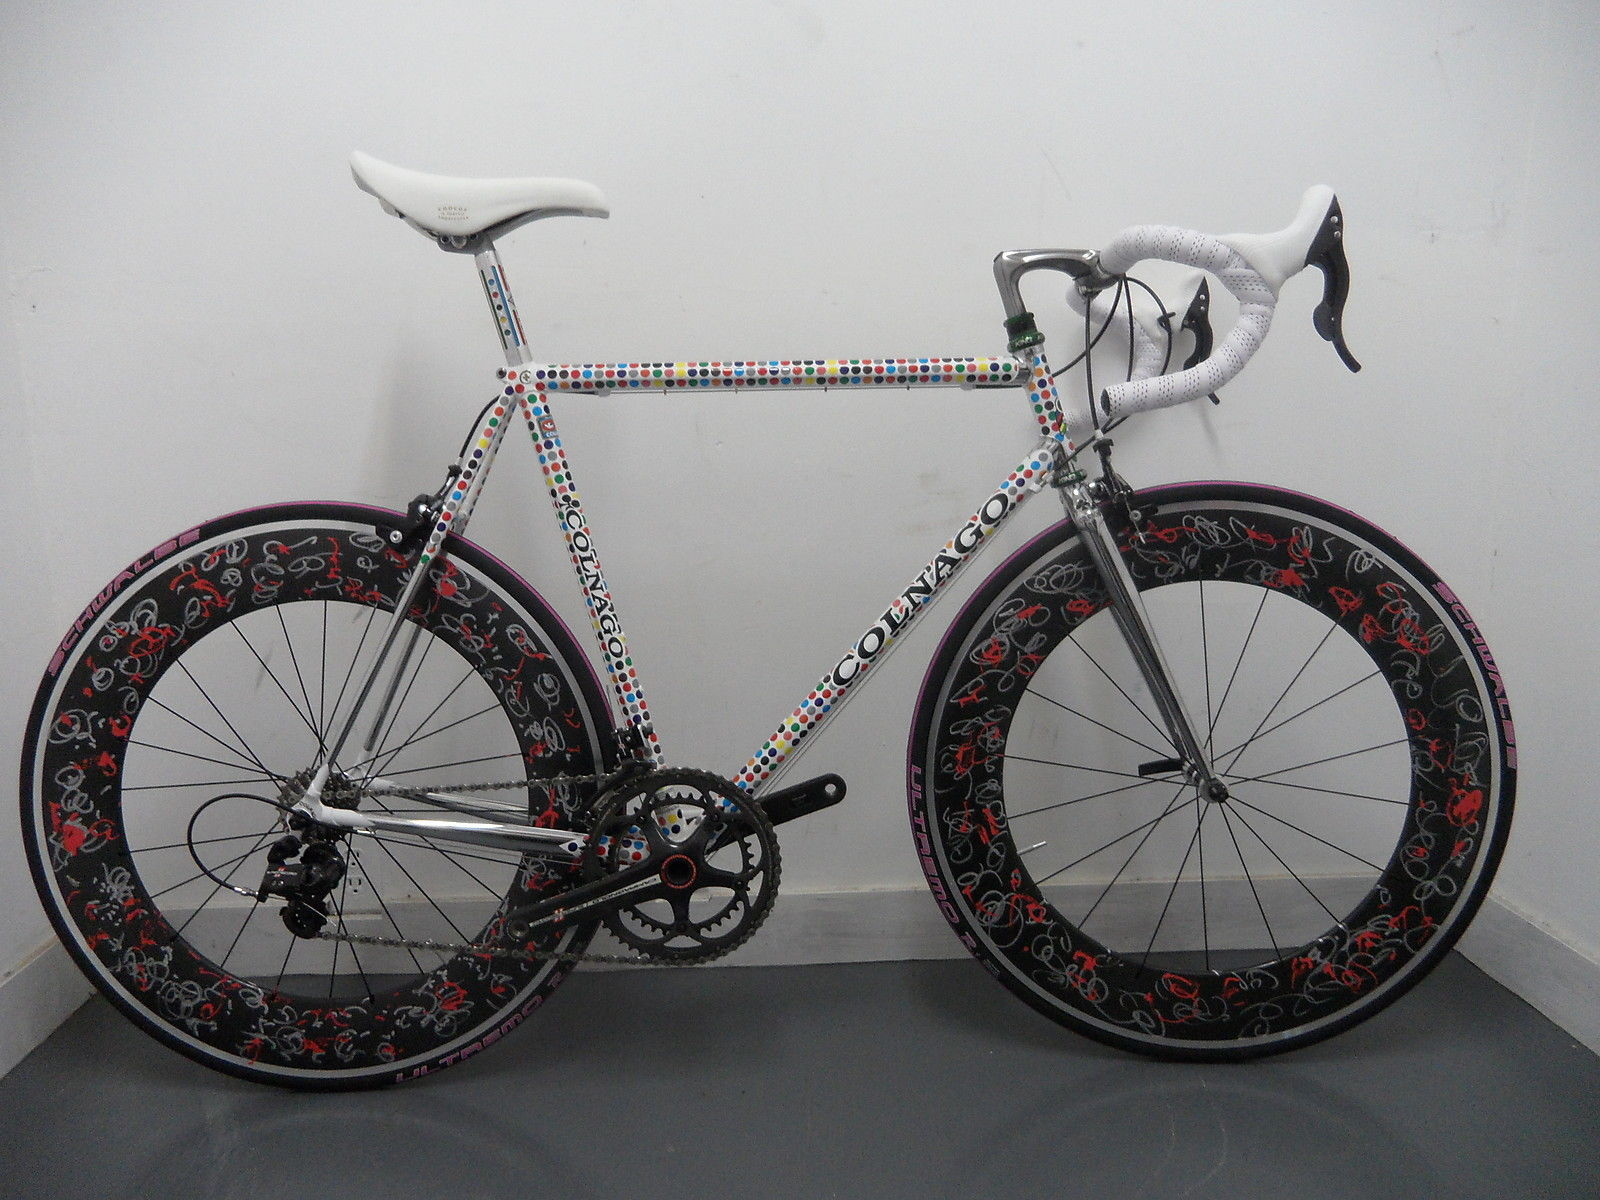 Prototype Colnago Road Bike With Matching Art Wheels Now